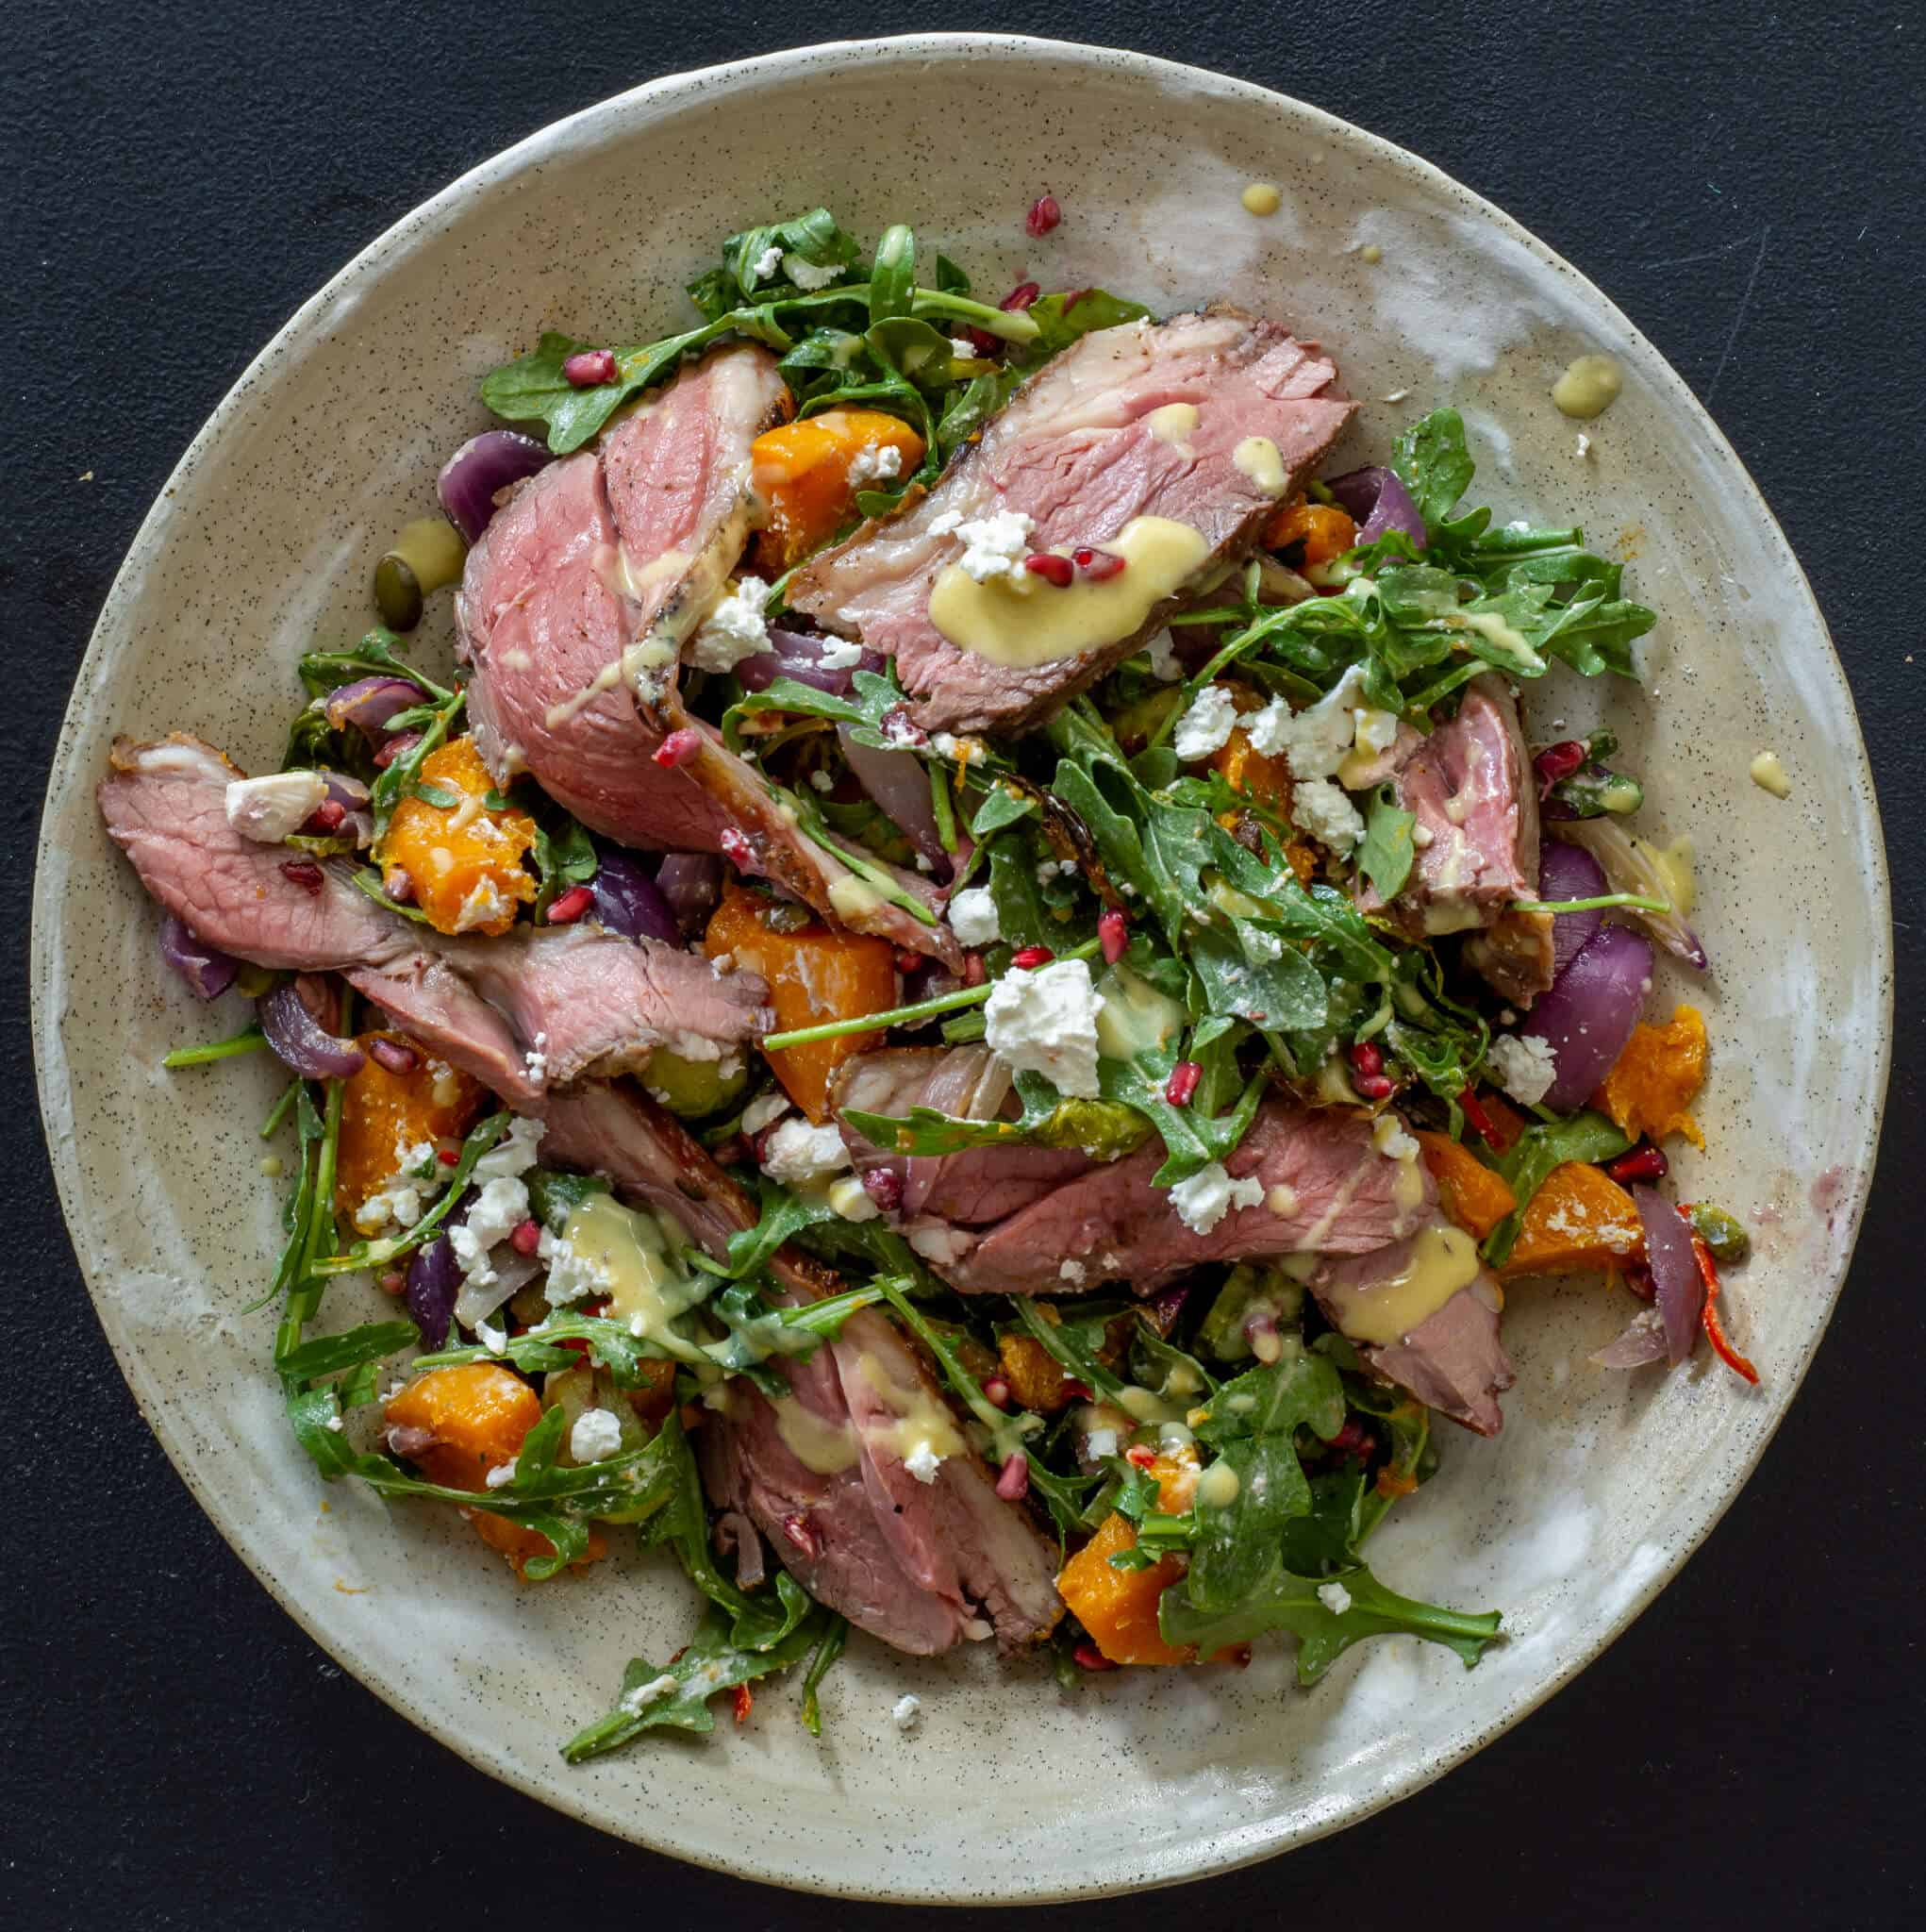 Grilled lamb & roasted veg salad in a bowl